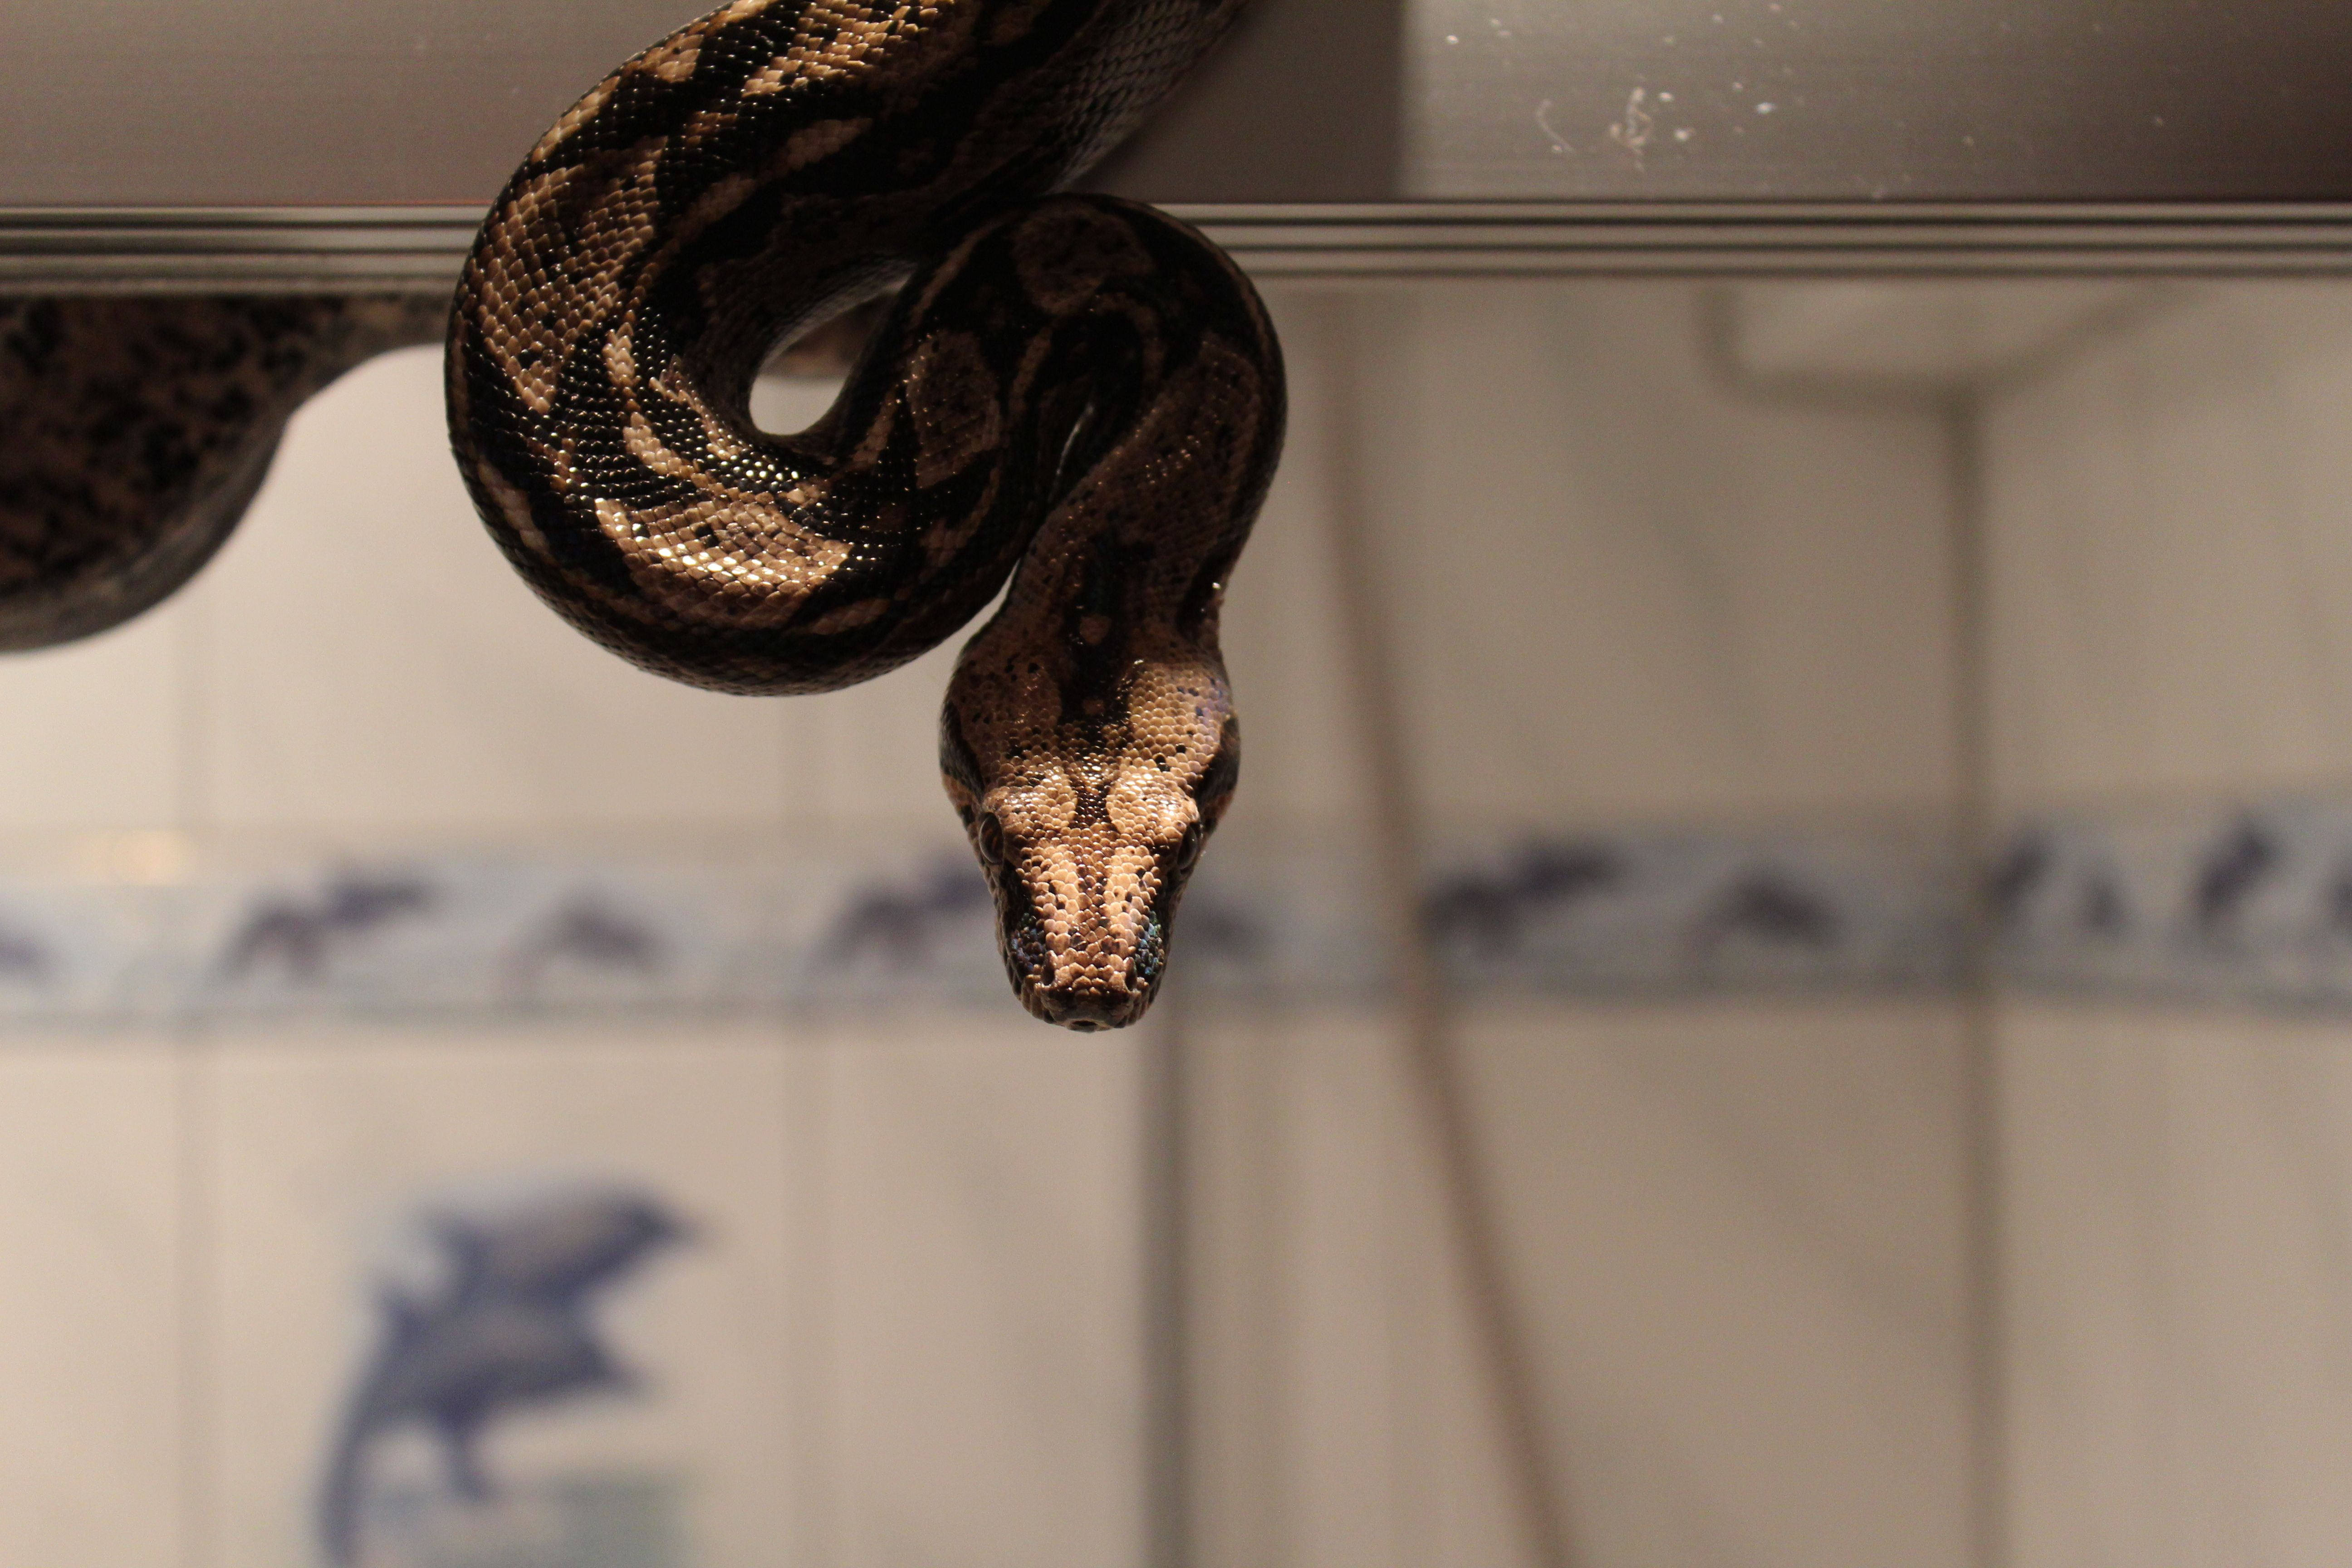 Pin by Dorbn on Snake photography Snake, Reptiles and